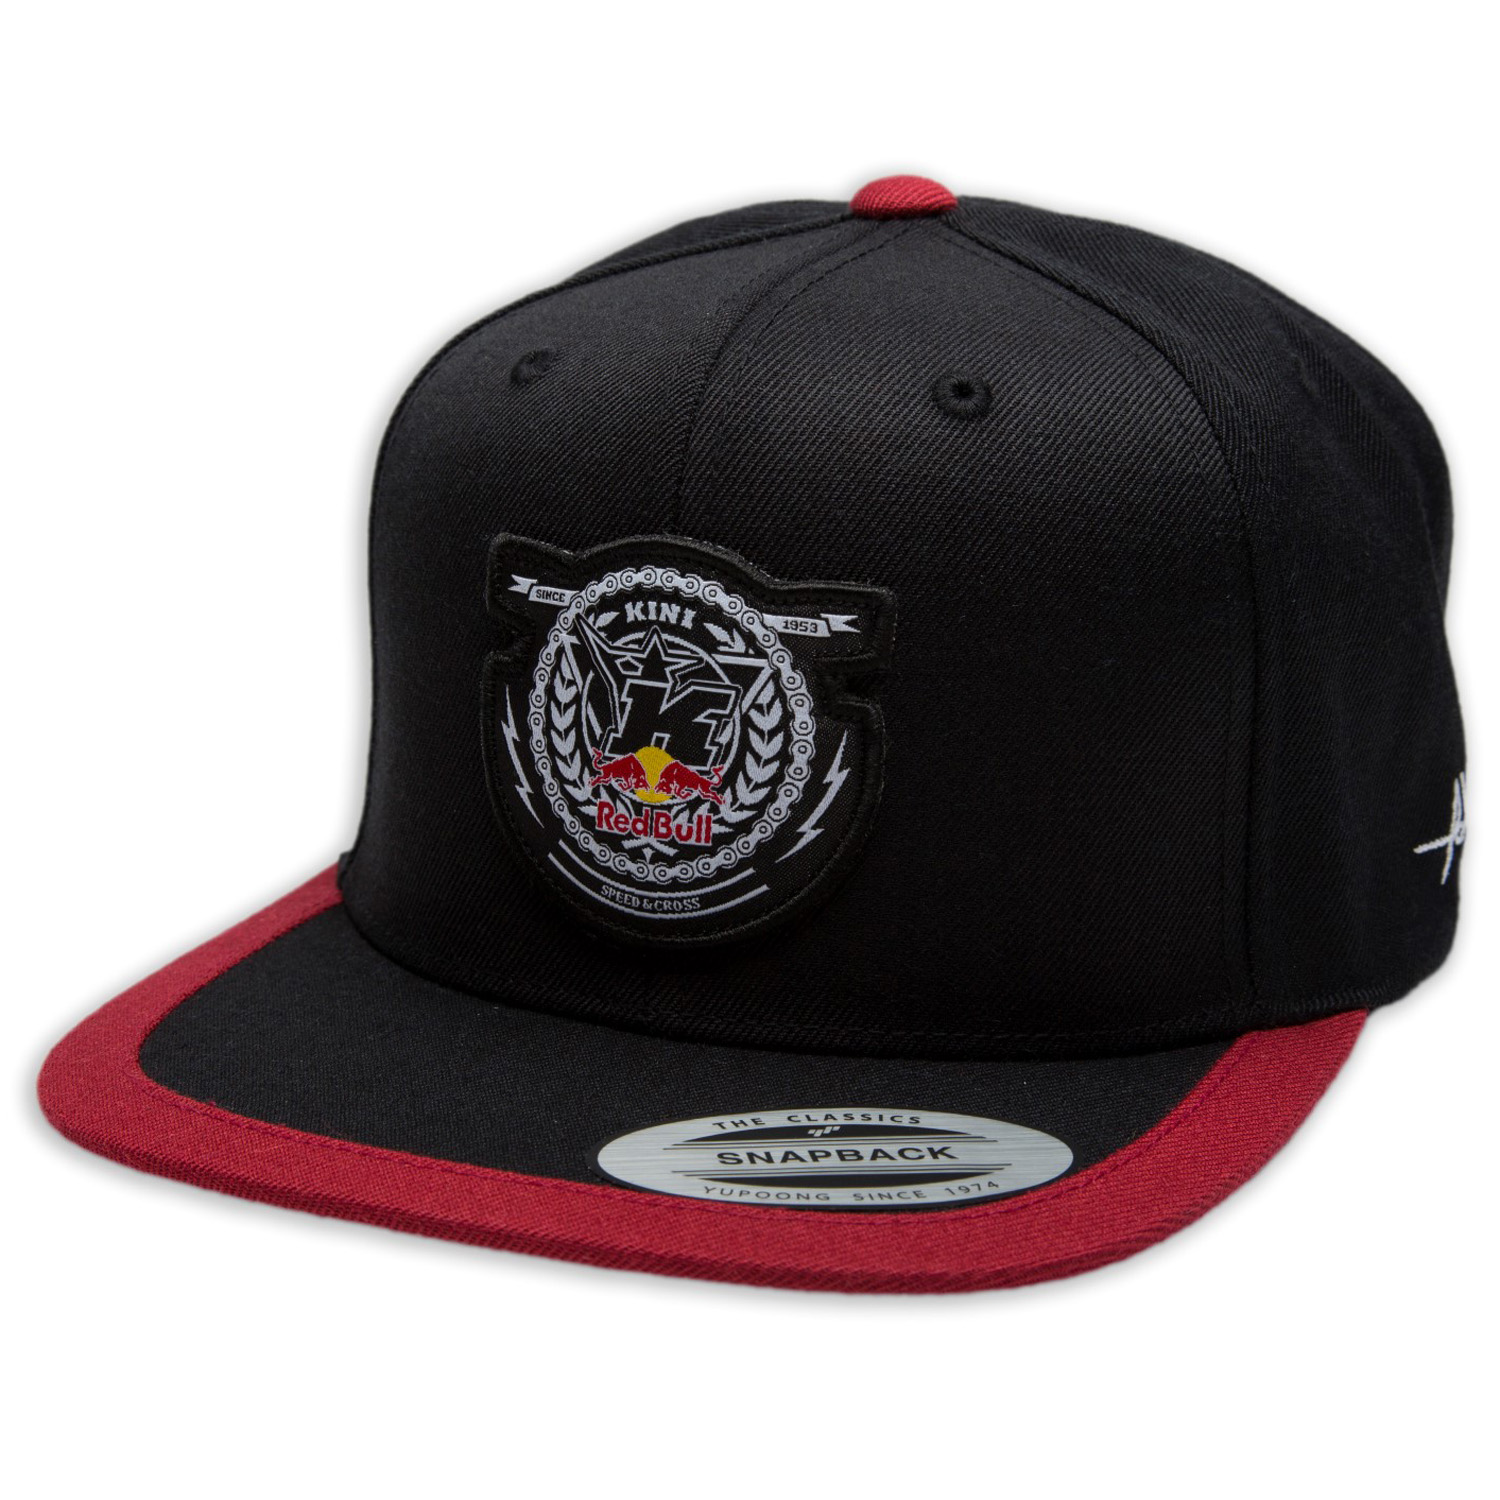 Kini Red Bull Cap Crest Black Red  7c1b346d11